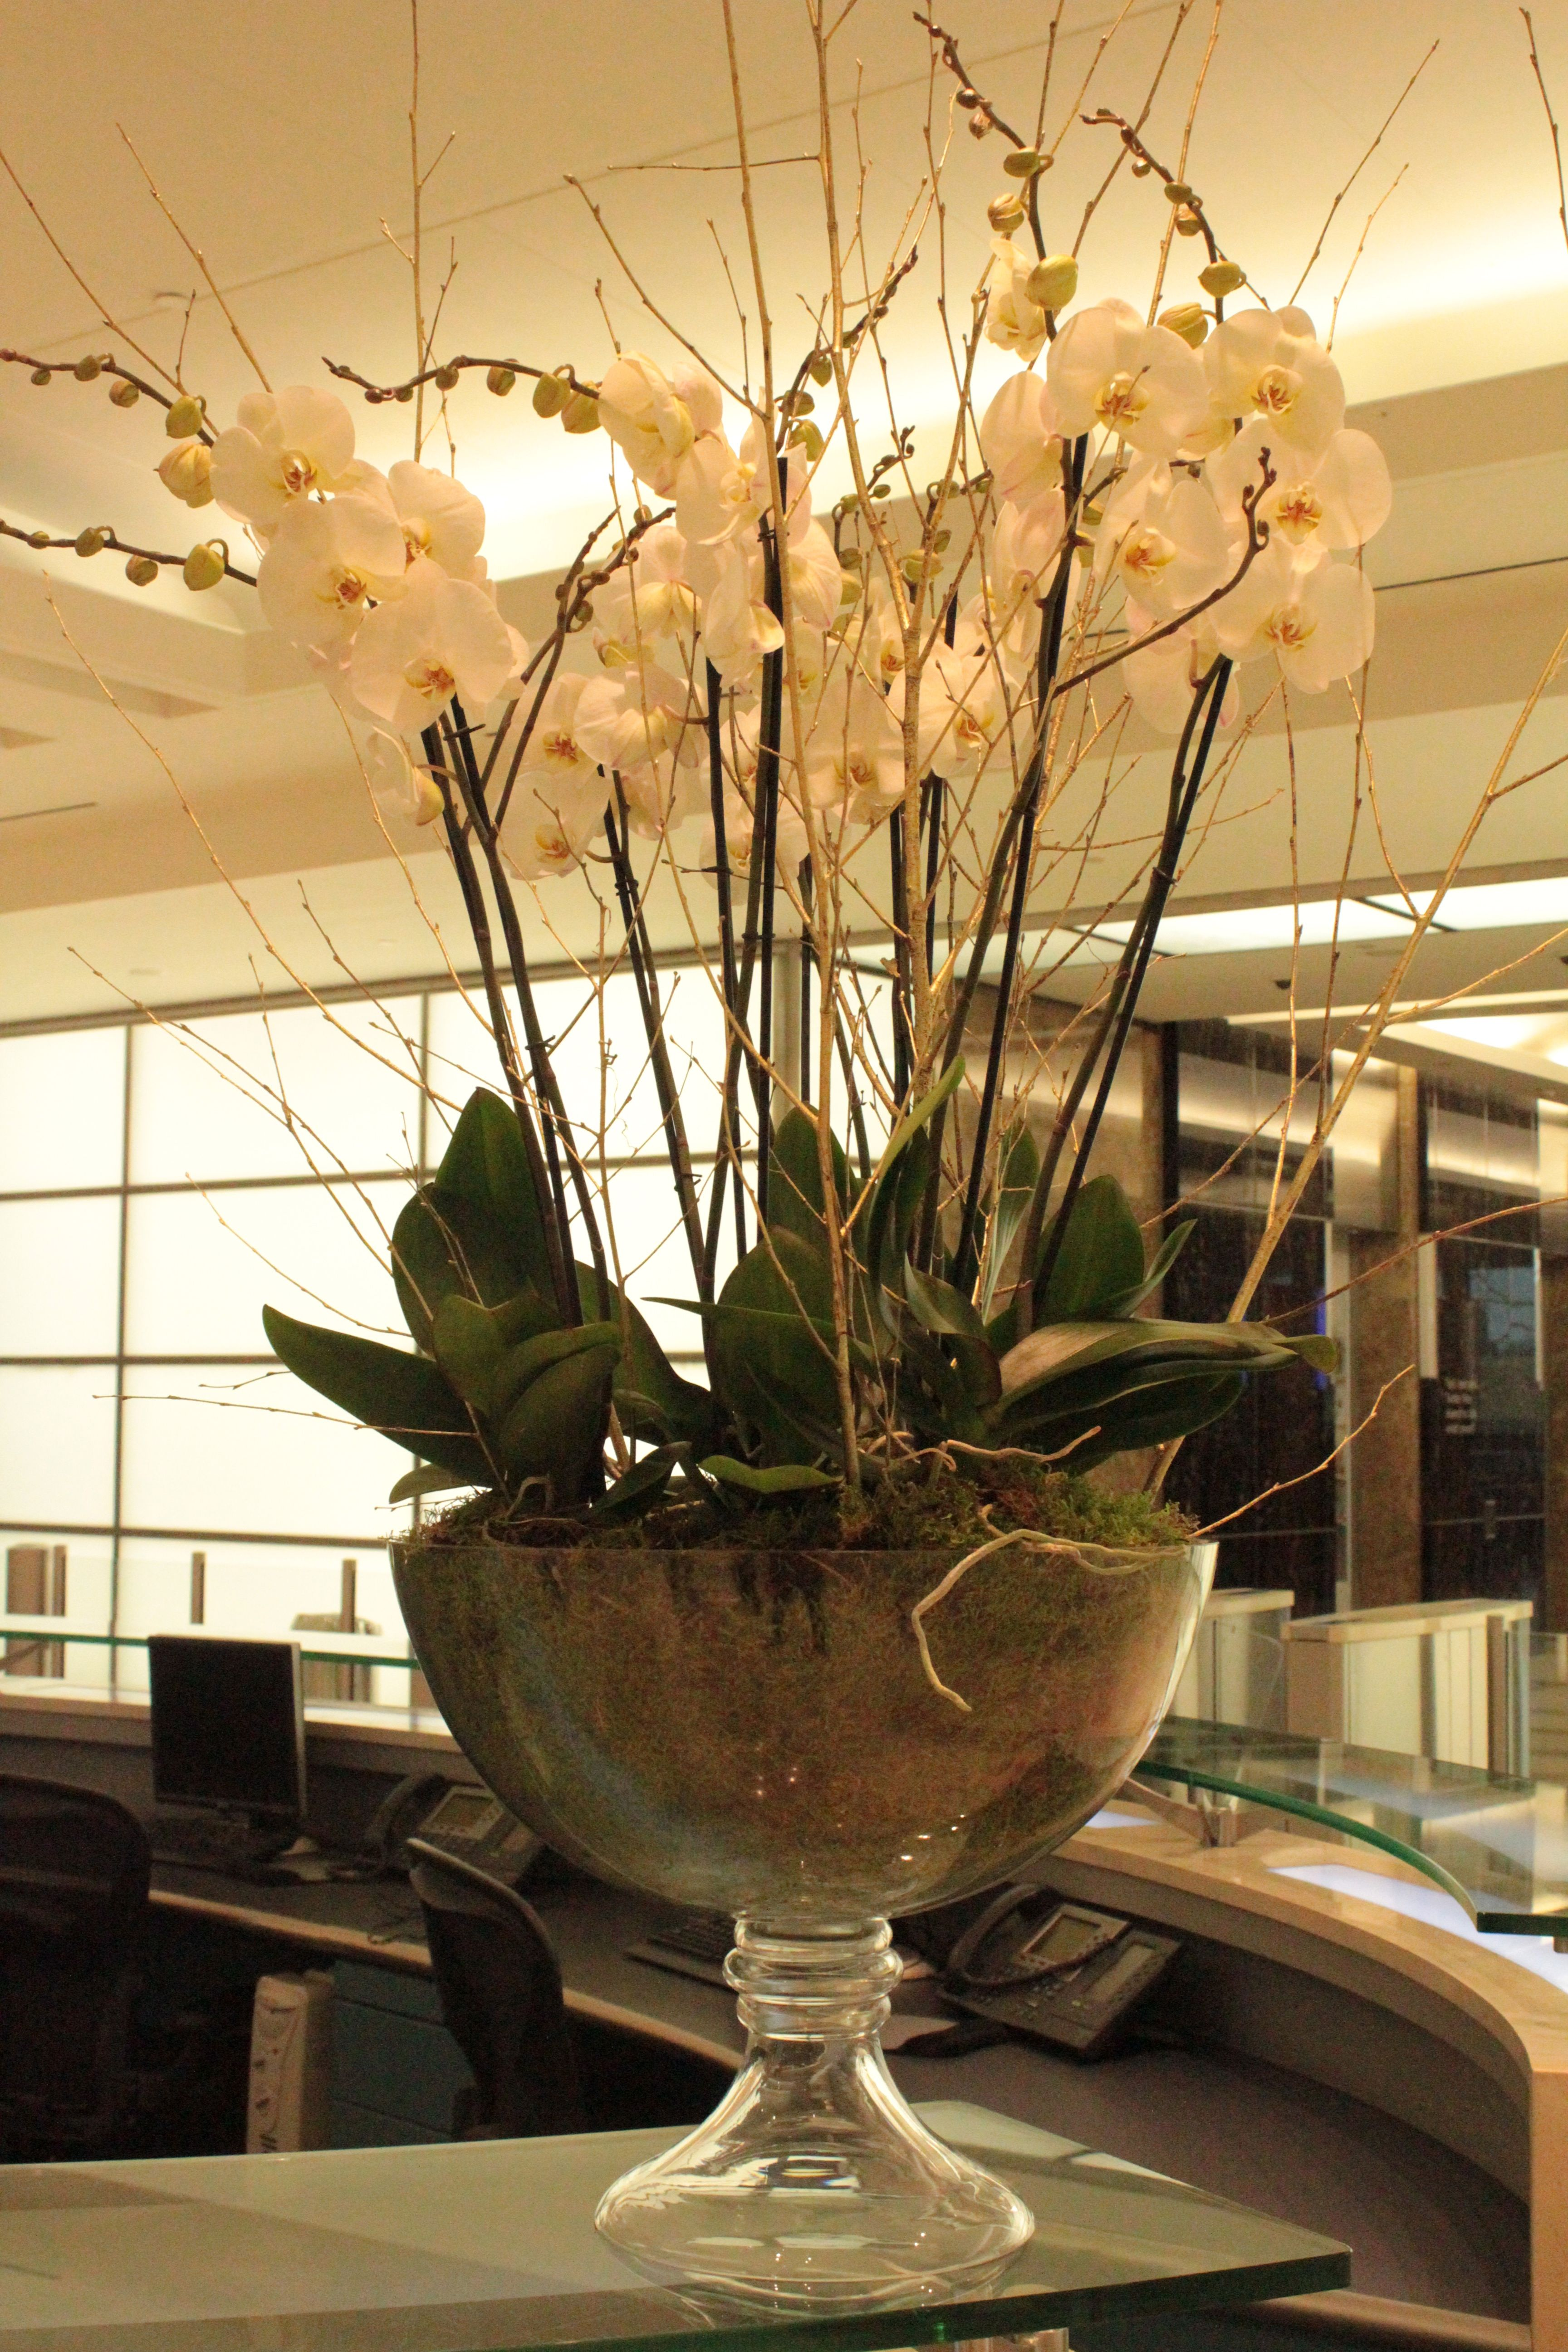 office floral arrangements tall white orchids for this corporate office floral arrangement contractflowers orchid whiteorchids office flowers contract flowers pinterest flowers floral